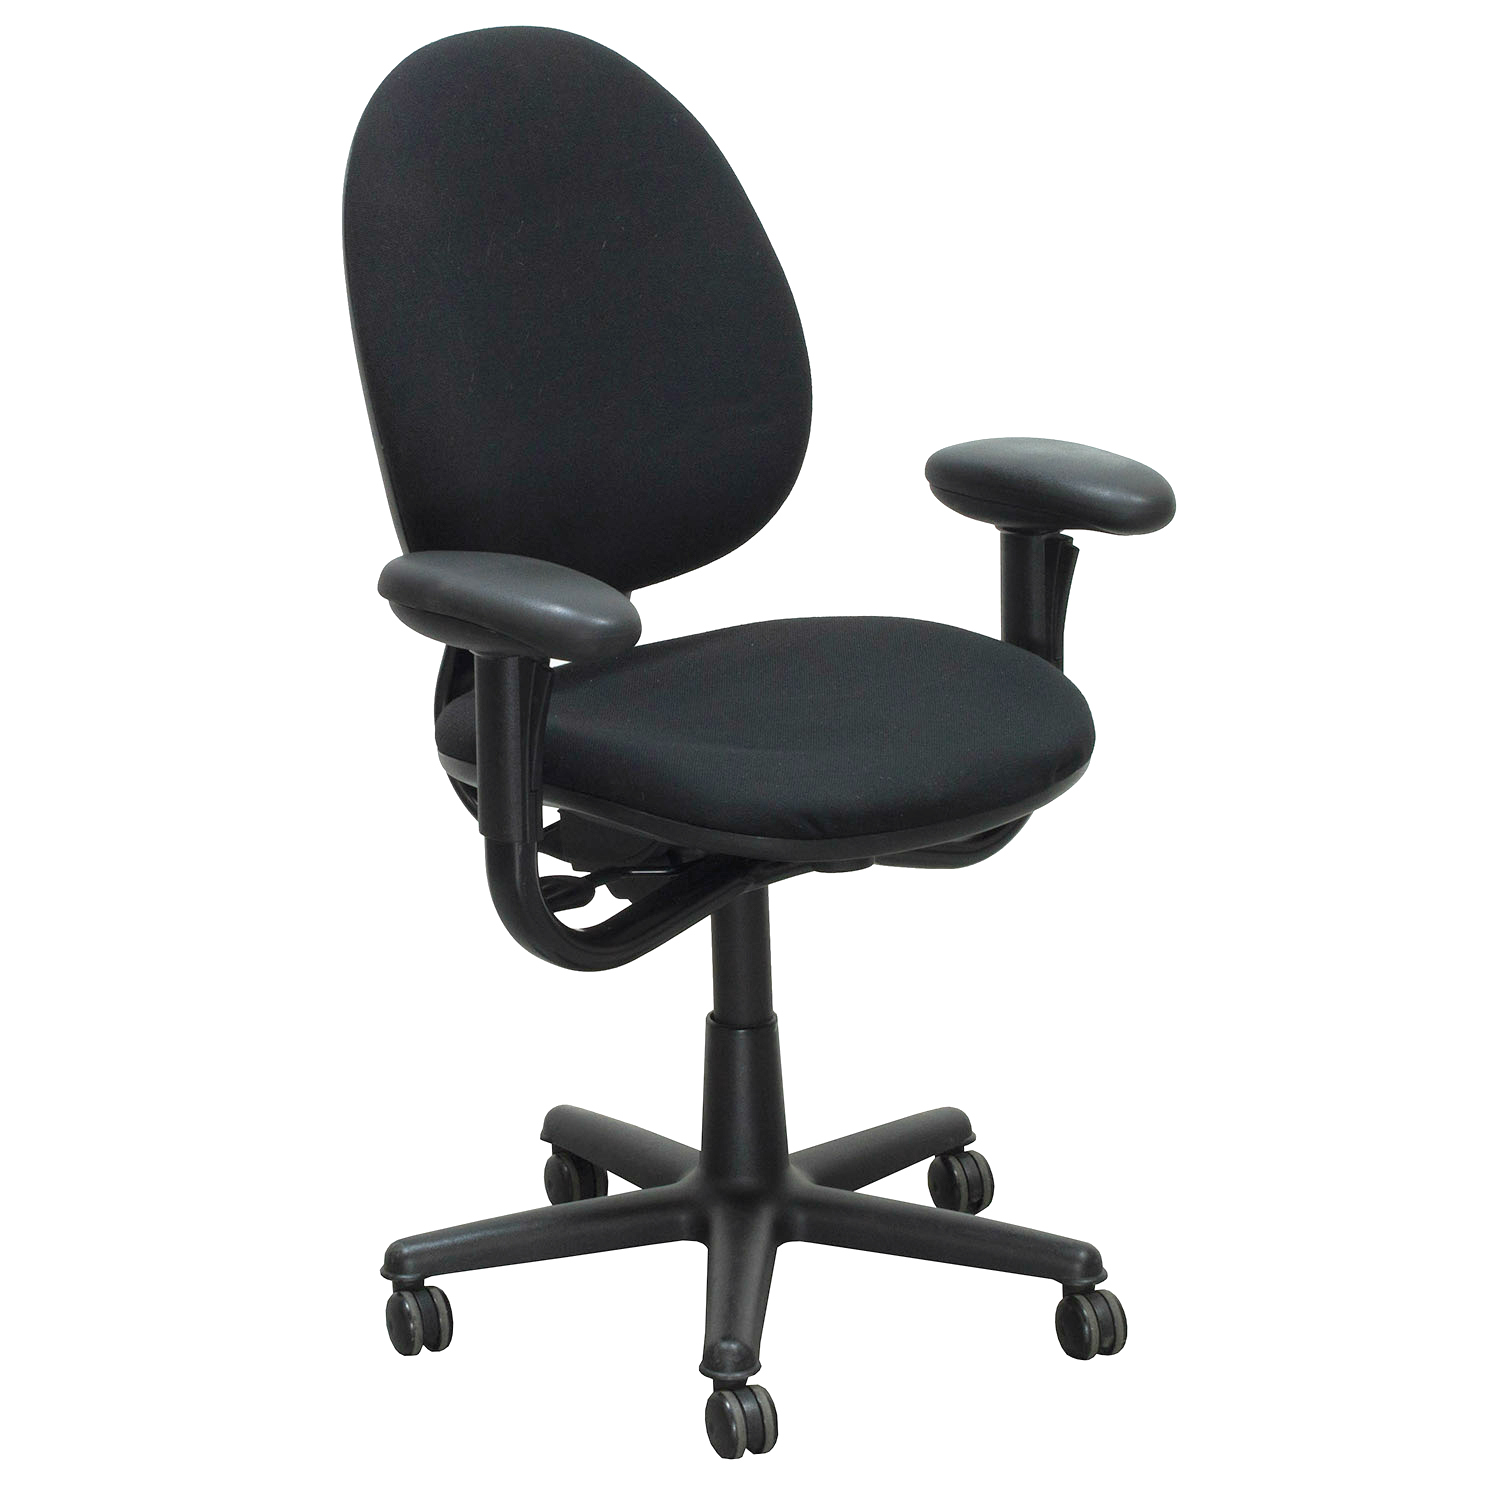 Steelcase Criterion Office Chair - Unisource Office Furniture Parts, Inc.